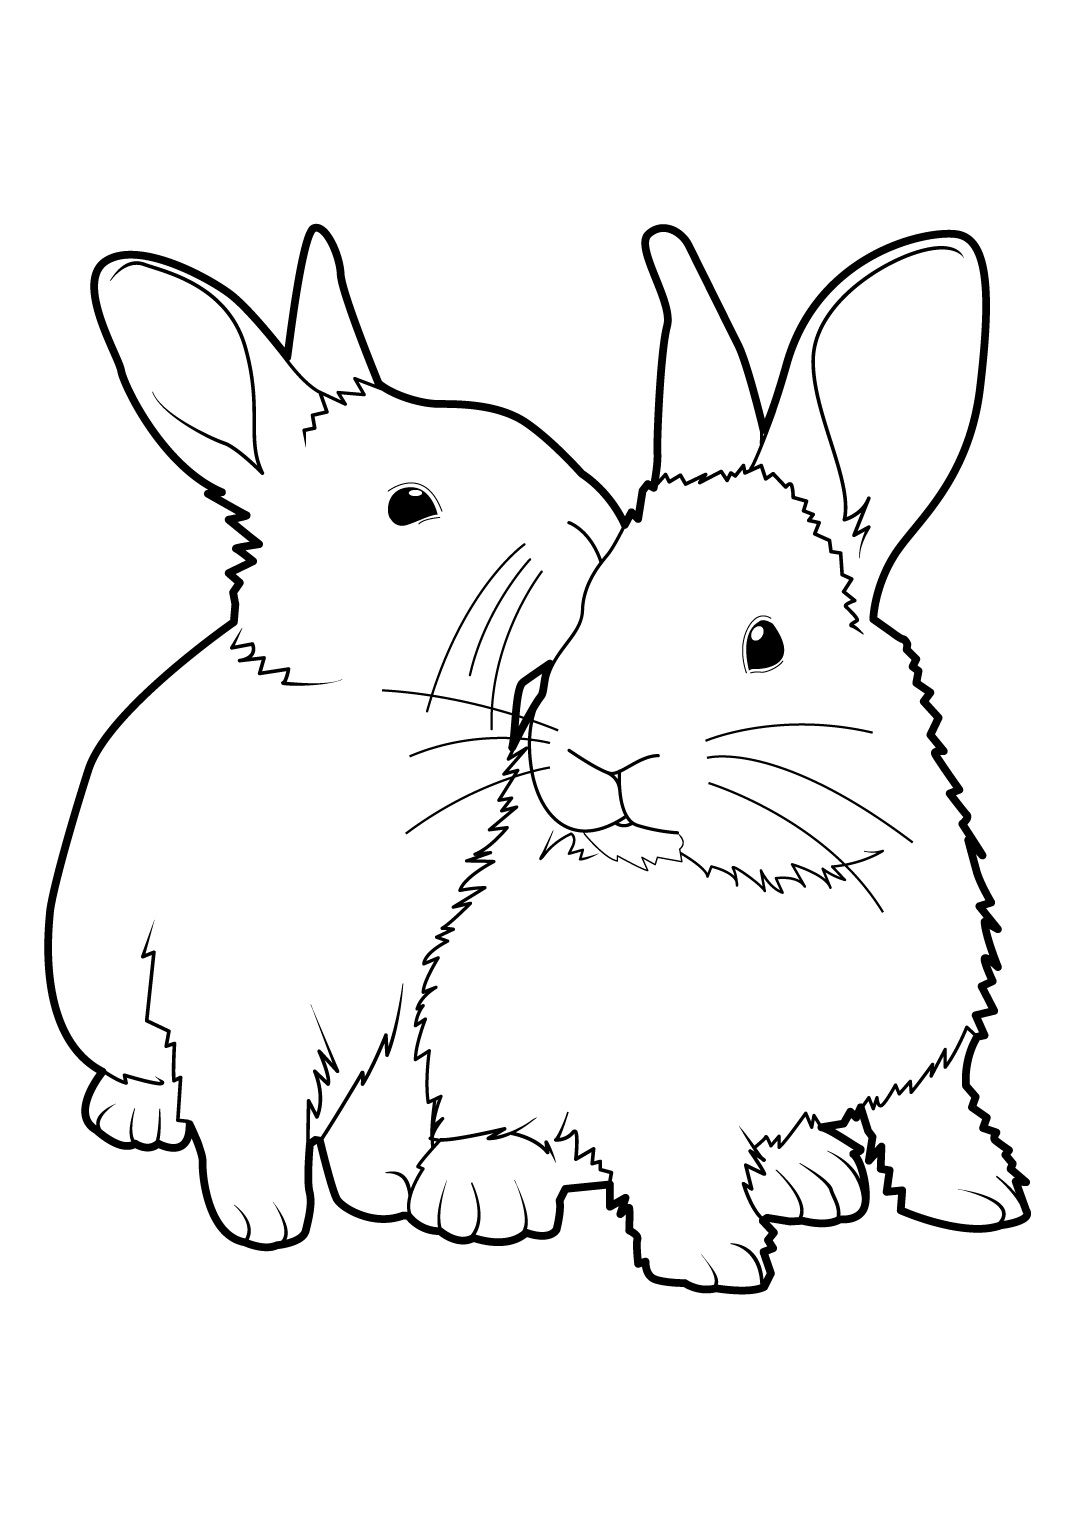 127 dessins de coloriage lapin imprimer. Black Bedroom Furniture Sets. Home Design Ideas